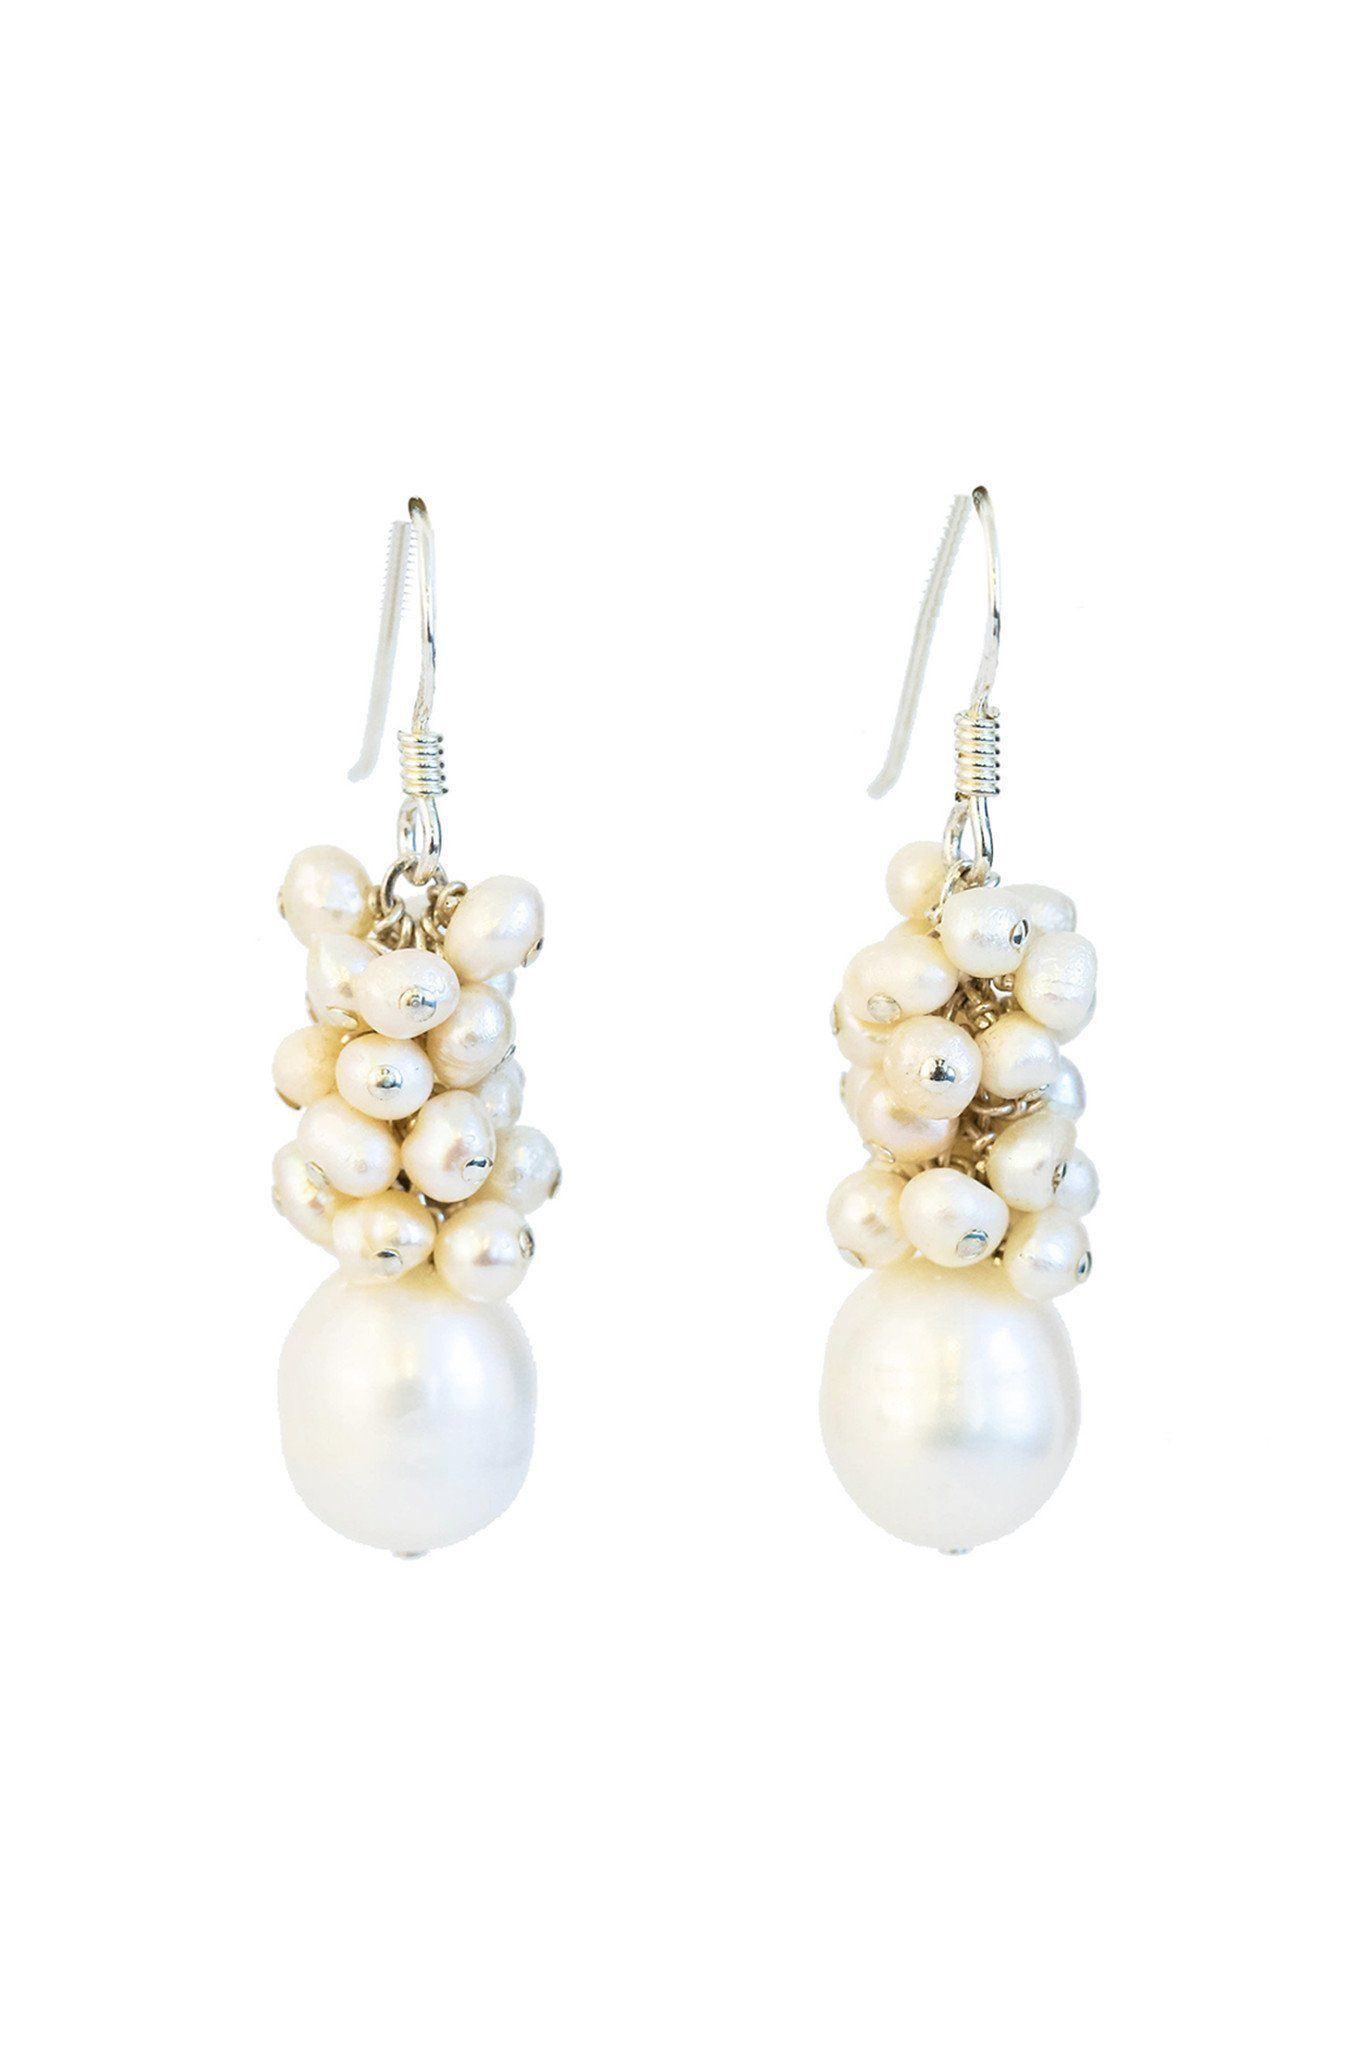 8462af04f Buy White Fresh Water Pearl Cluster Earrings In Sterling Silver ...